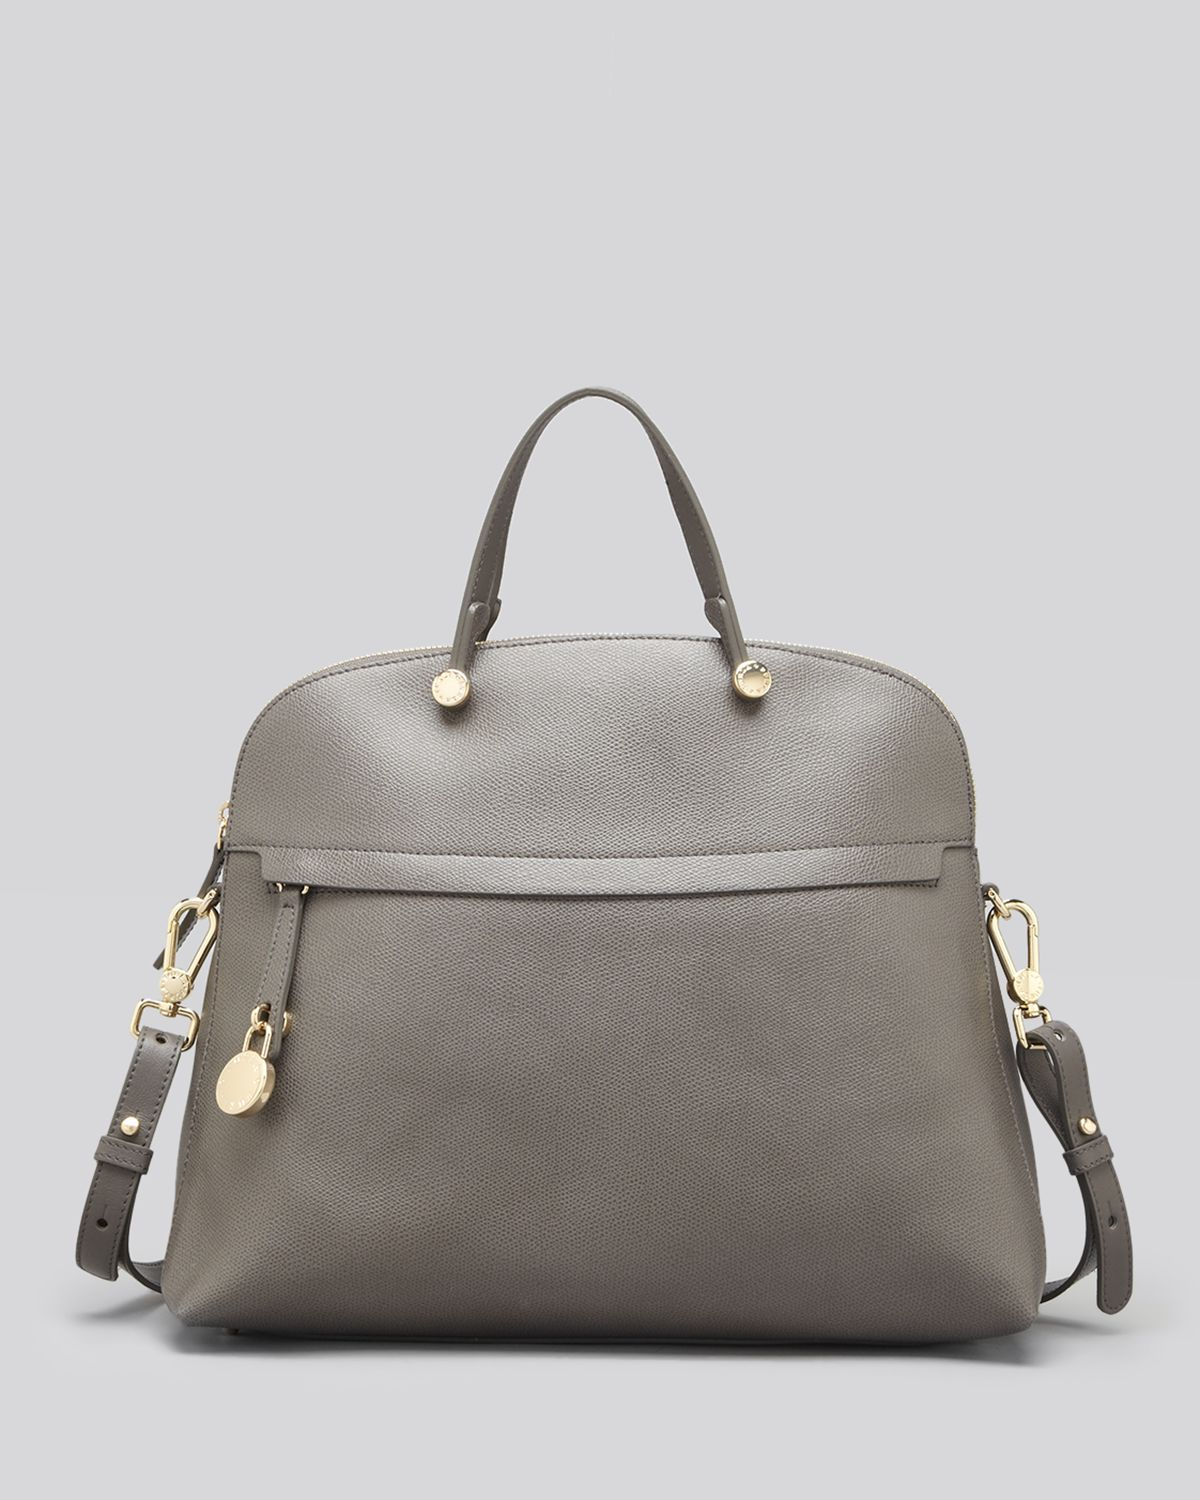 48e6b88dd7f3f Lyst - Furla Satchel - Piper Ares Leather Large Dome in Gray